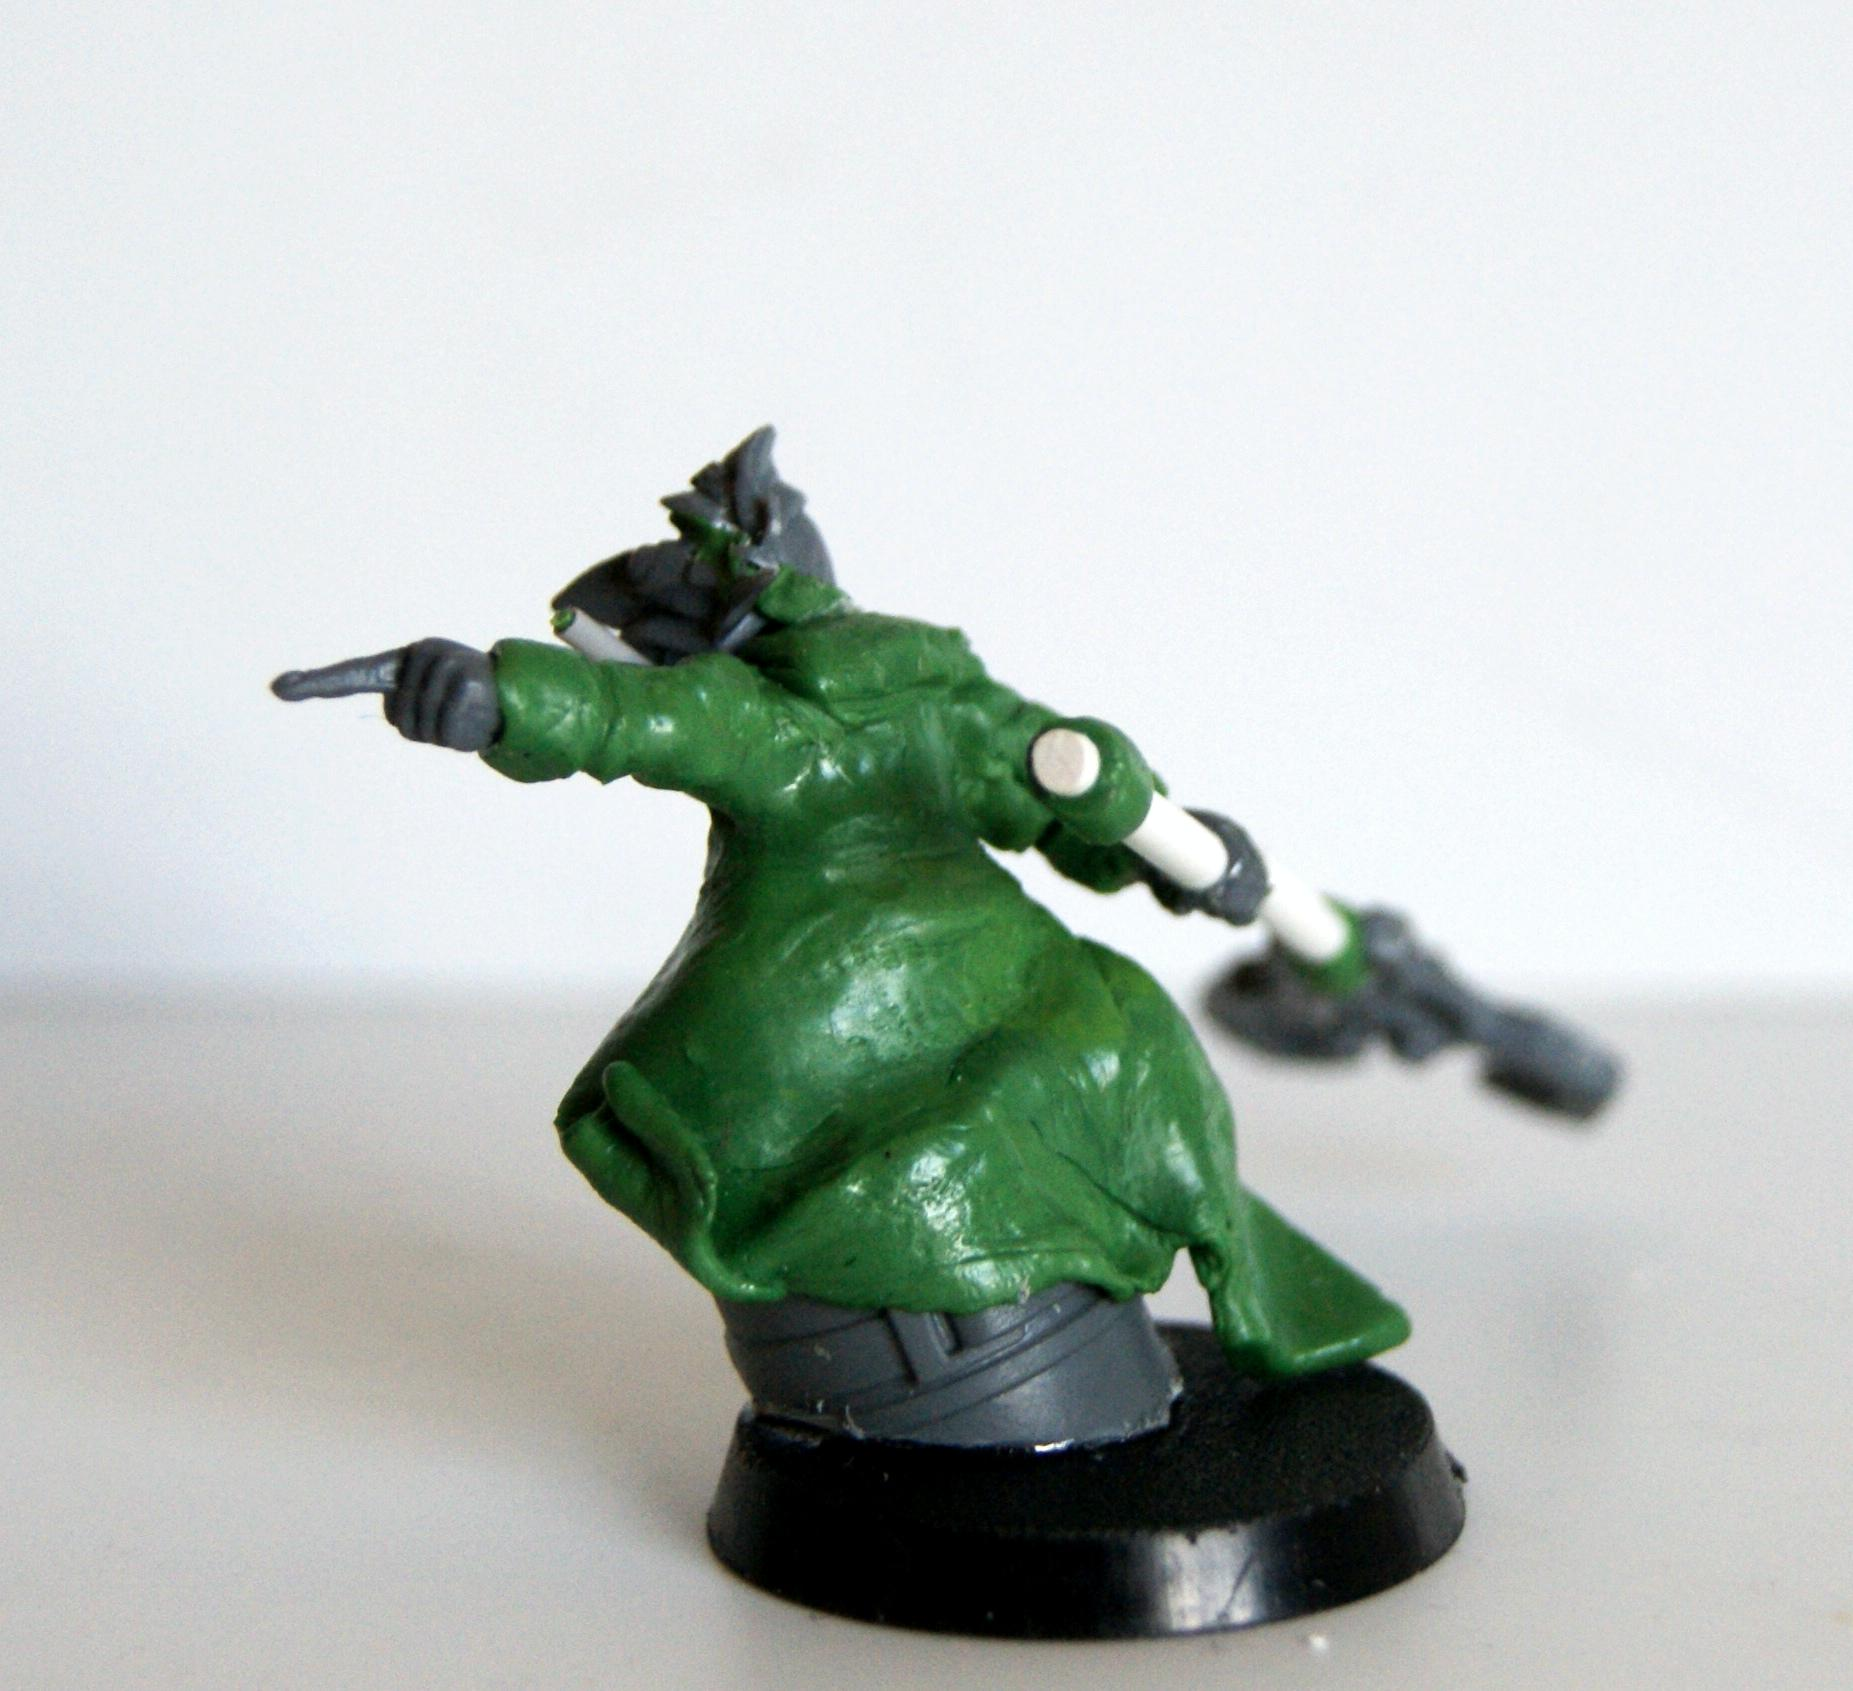 Conversion, Grot Rebellion, Grot Rebels, Grots, Runtherd, Warhammer 40,000, Work In Progress